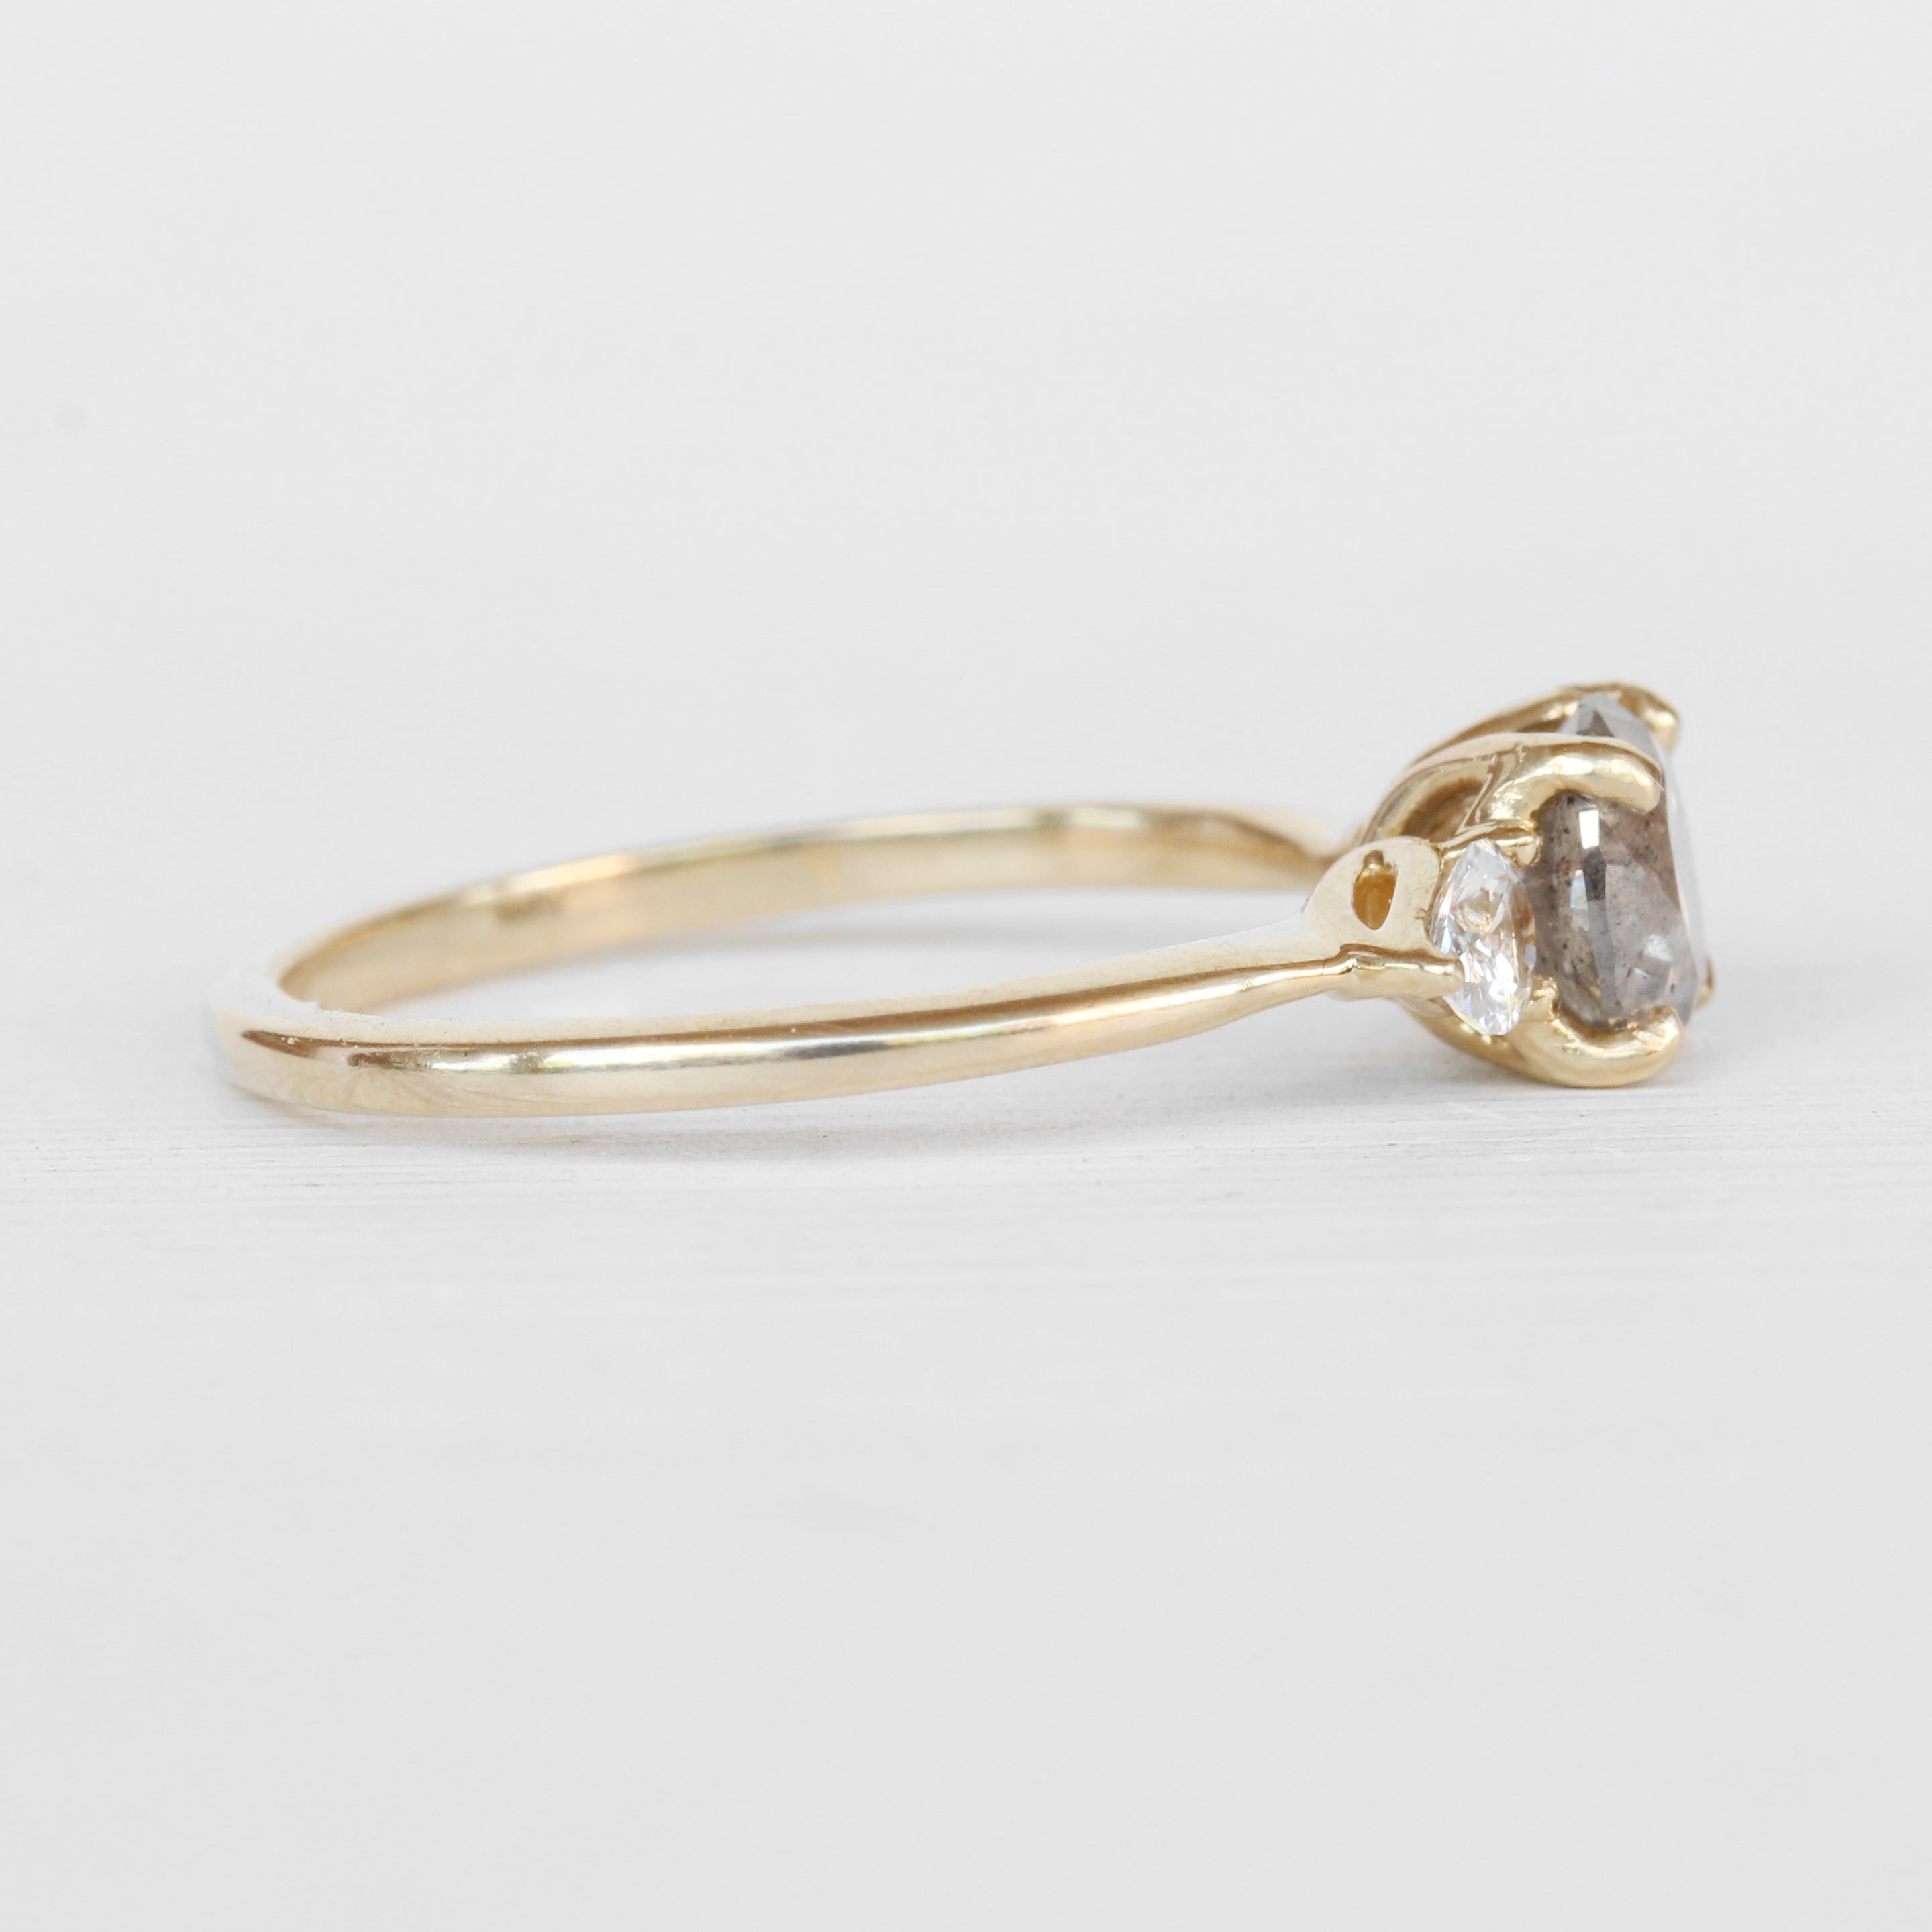 Oleander Ring with a Celestial Diamond and White Sapphires in 14k Yellow Gold - Ready to Size and Ship